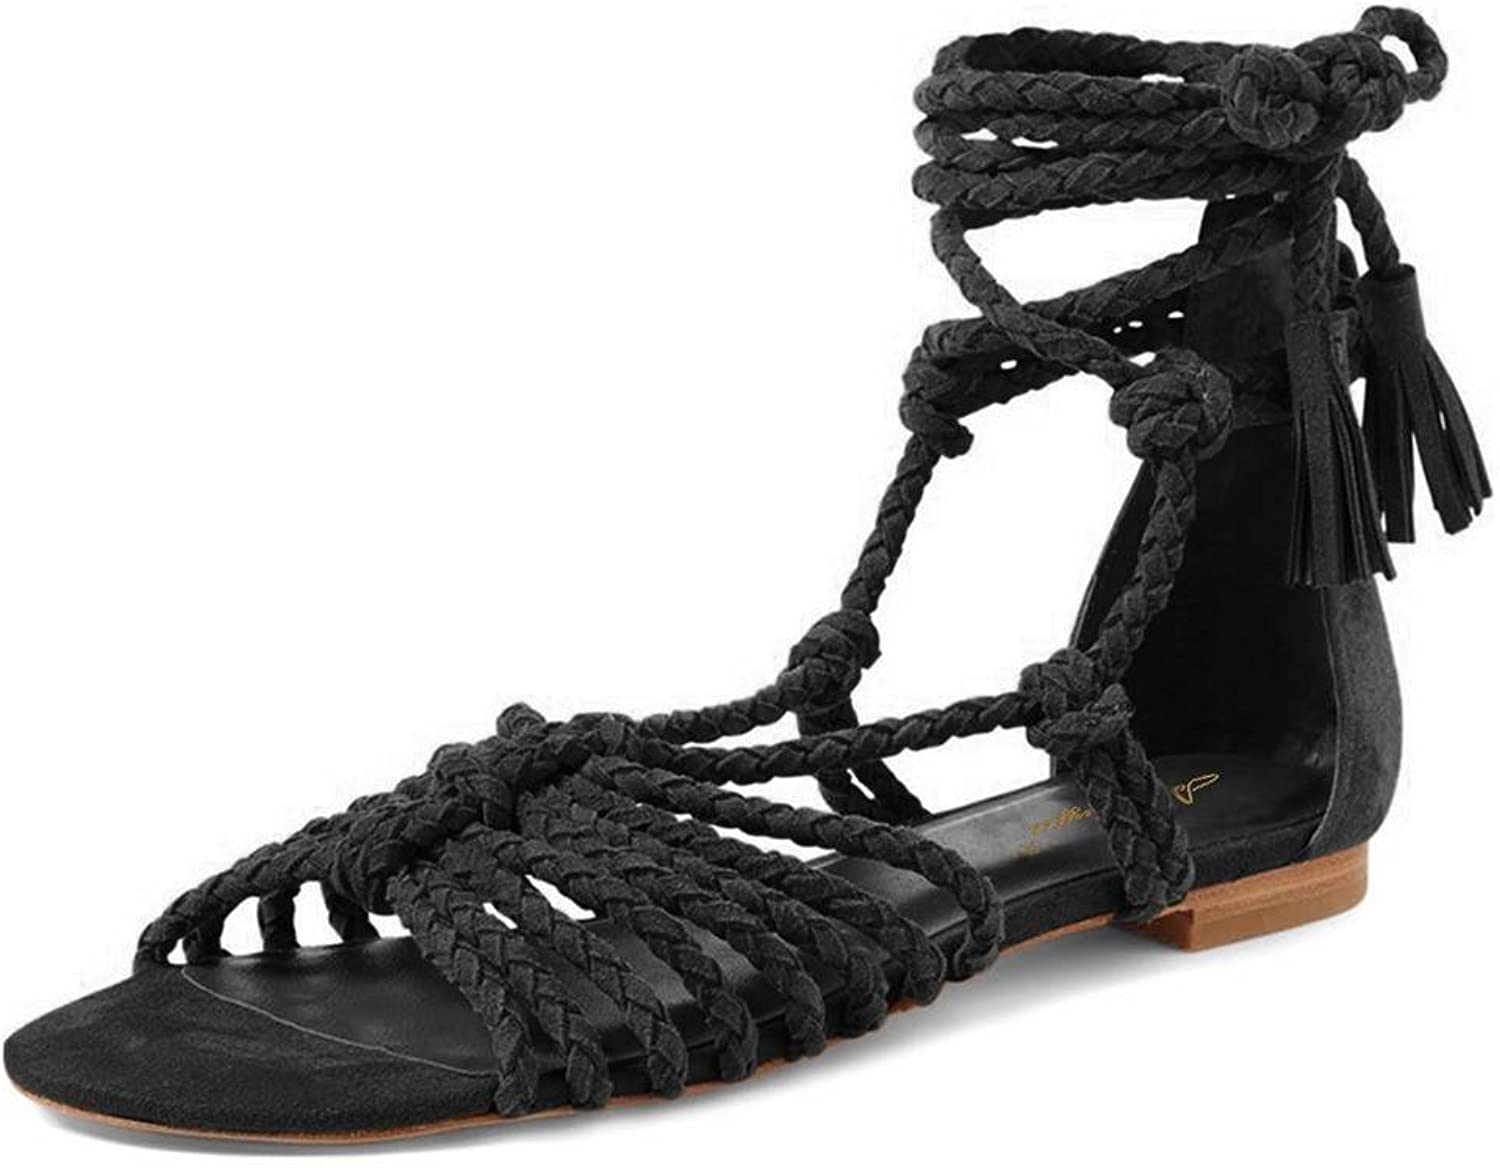 NJ Womens Open Toe Strappy Gladiator Flat Sandals Ankle High Lace-up Fringes shoes